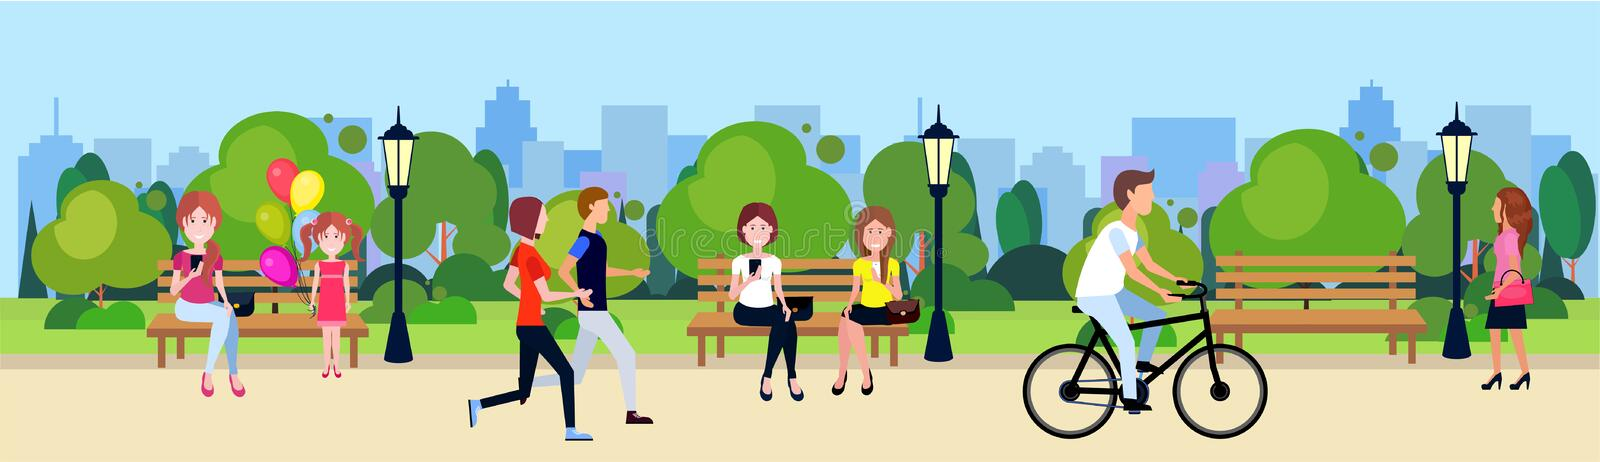 Public park people relax sitting wooden bench outdoors walking cycling running green lawn trees on city buildings. Template background flat banner vector stock illustration